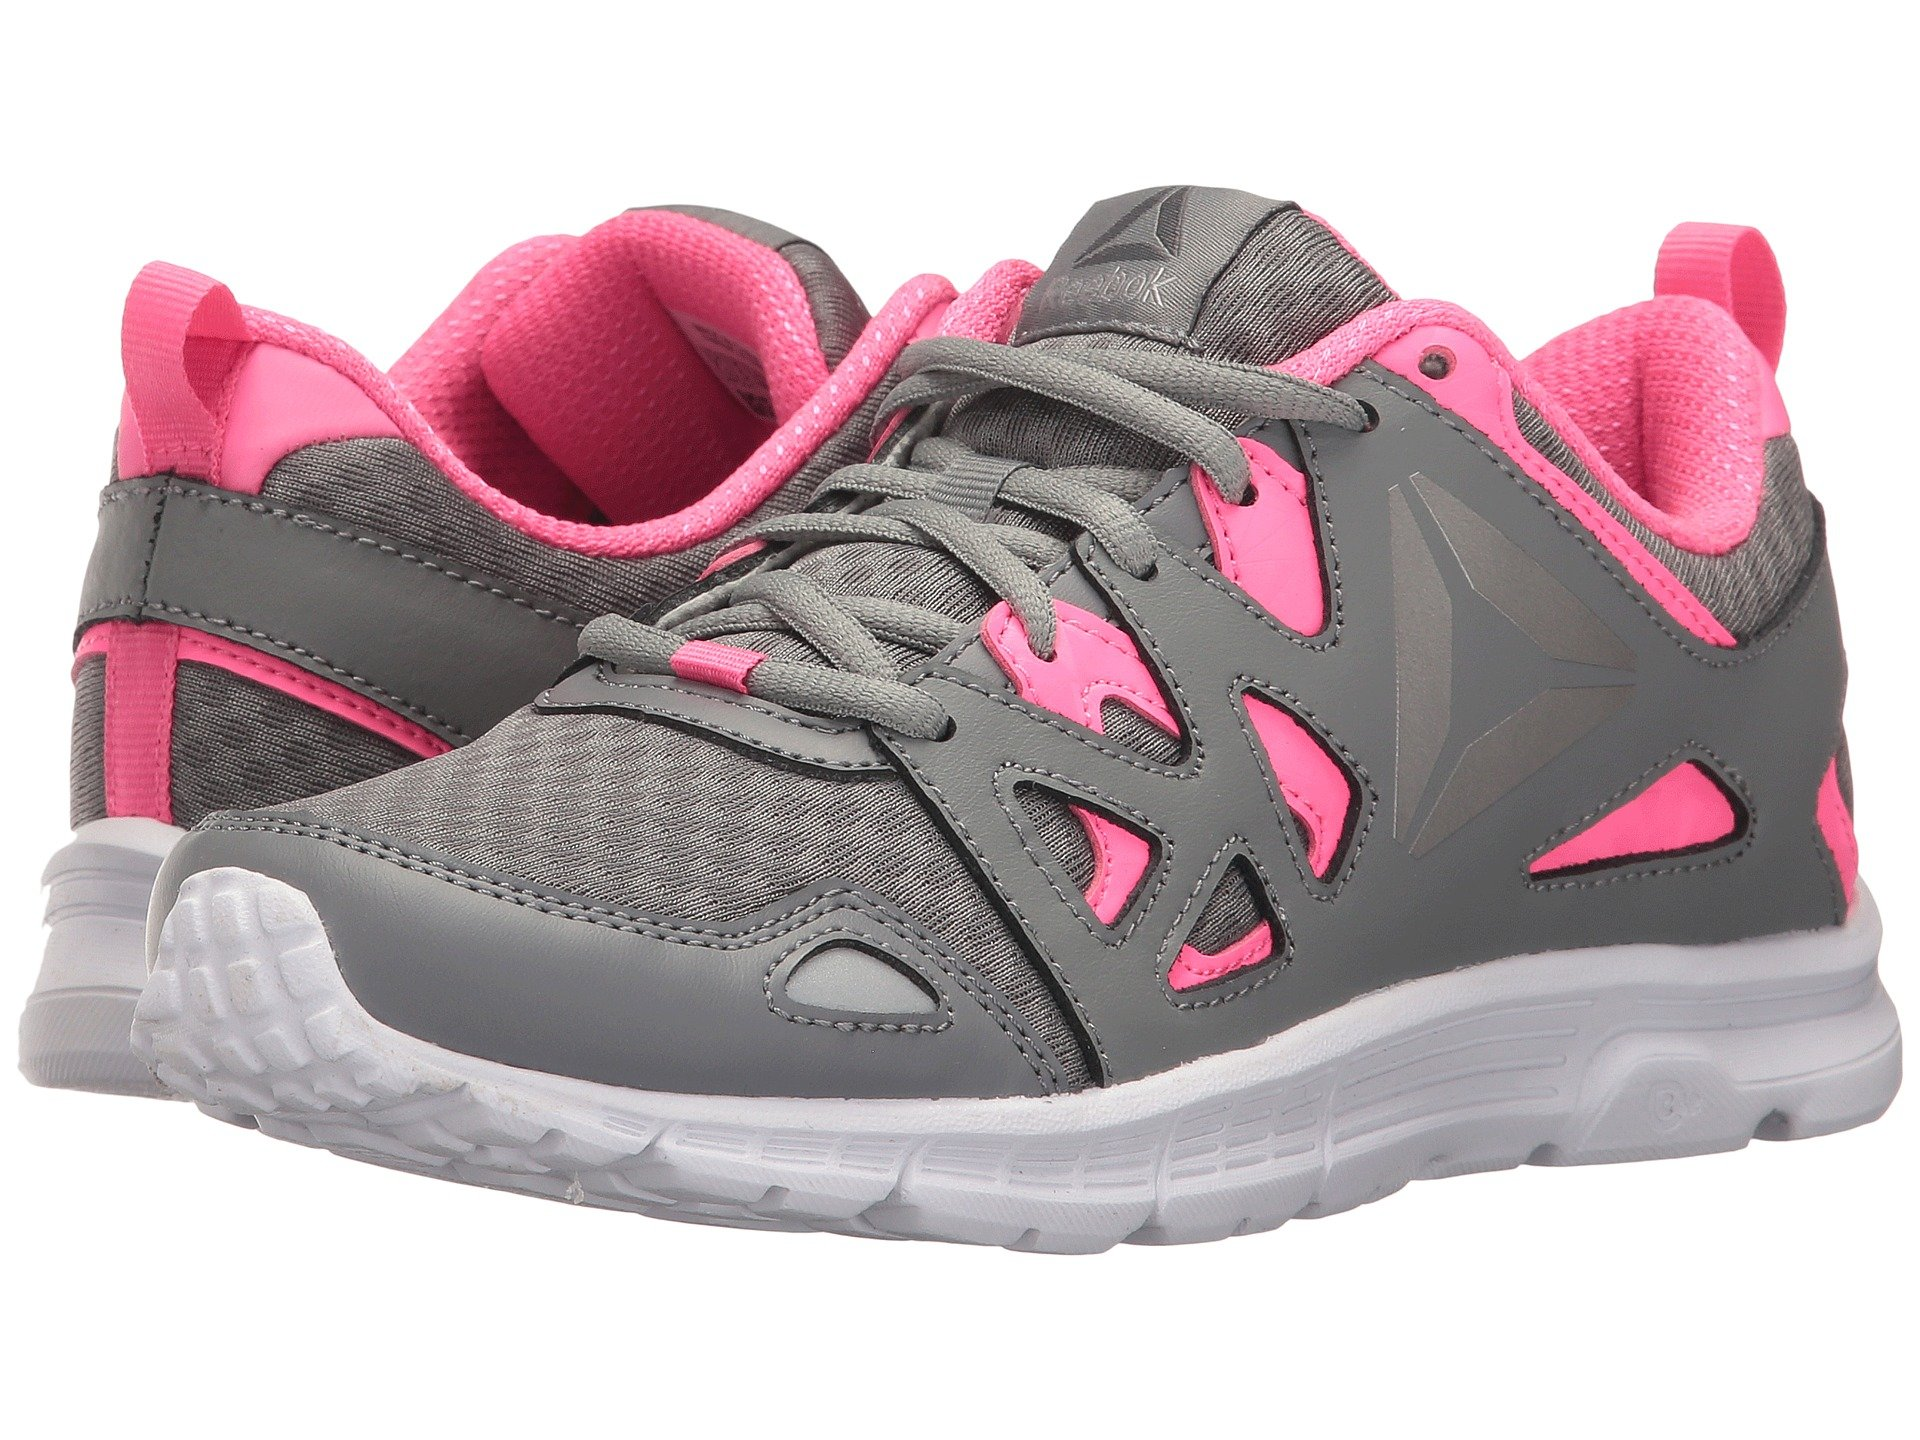 c65f013e54c Reebok Run Supreme 3.0 Mt In Flint Grey Solar Pink Pewter White